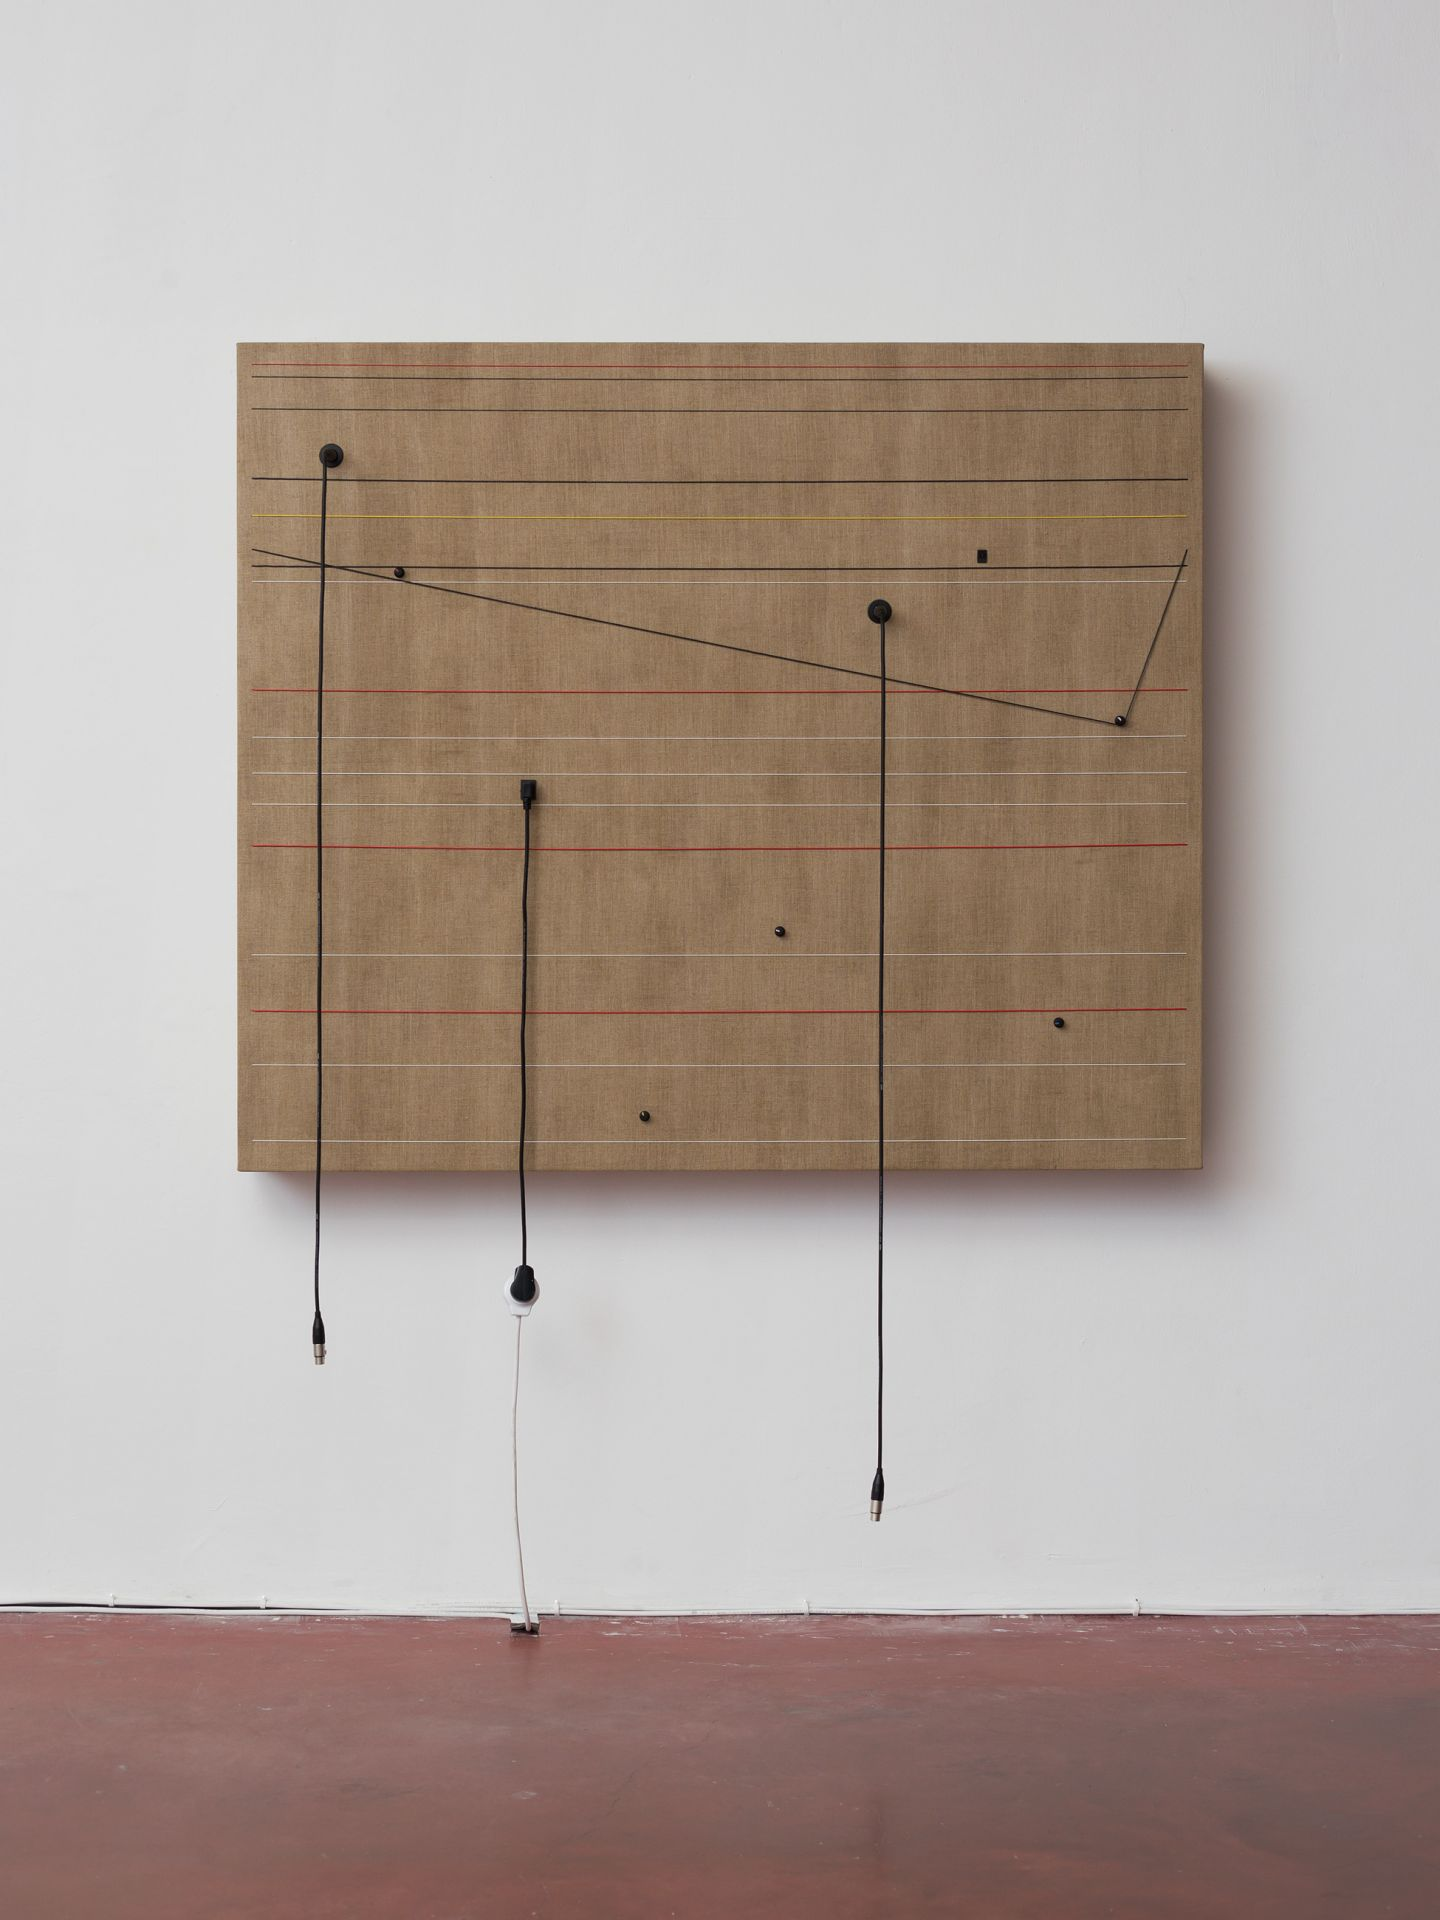 """Transitions , 2016, Wood, canvas, electronics, cables, knobs, speakers, 51 3/5 × 60 2/5 × 6 1/2"""""""